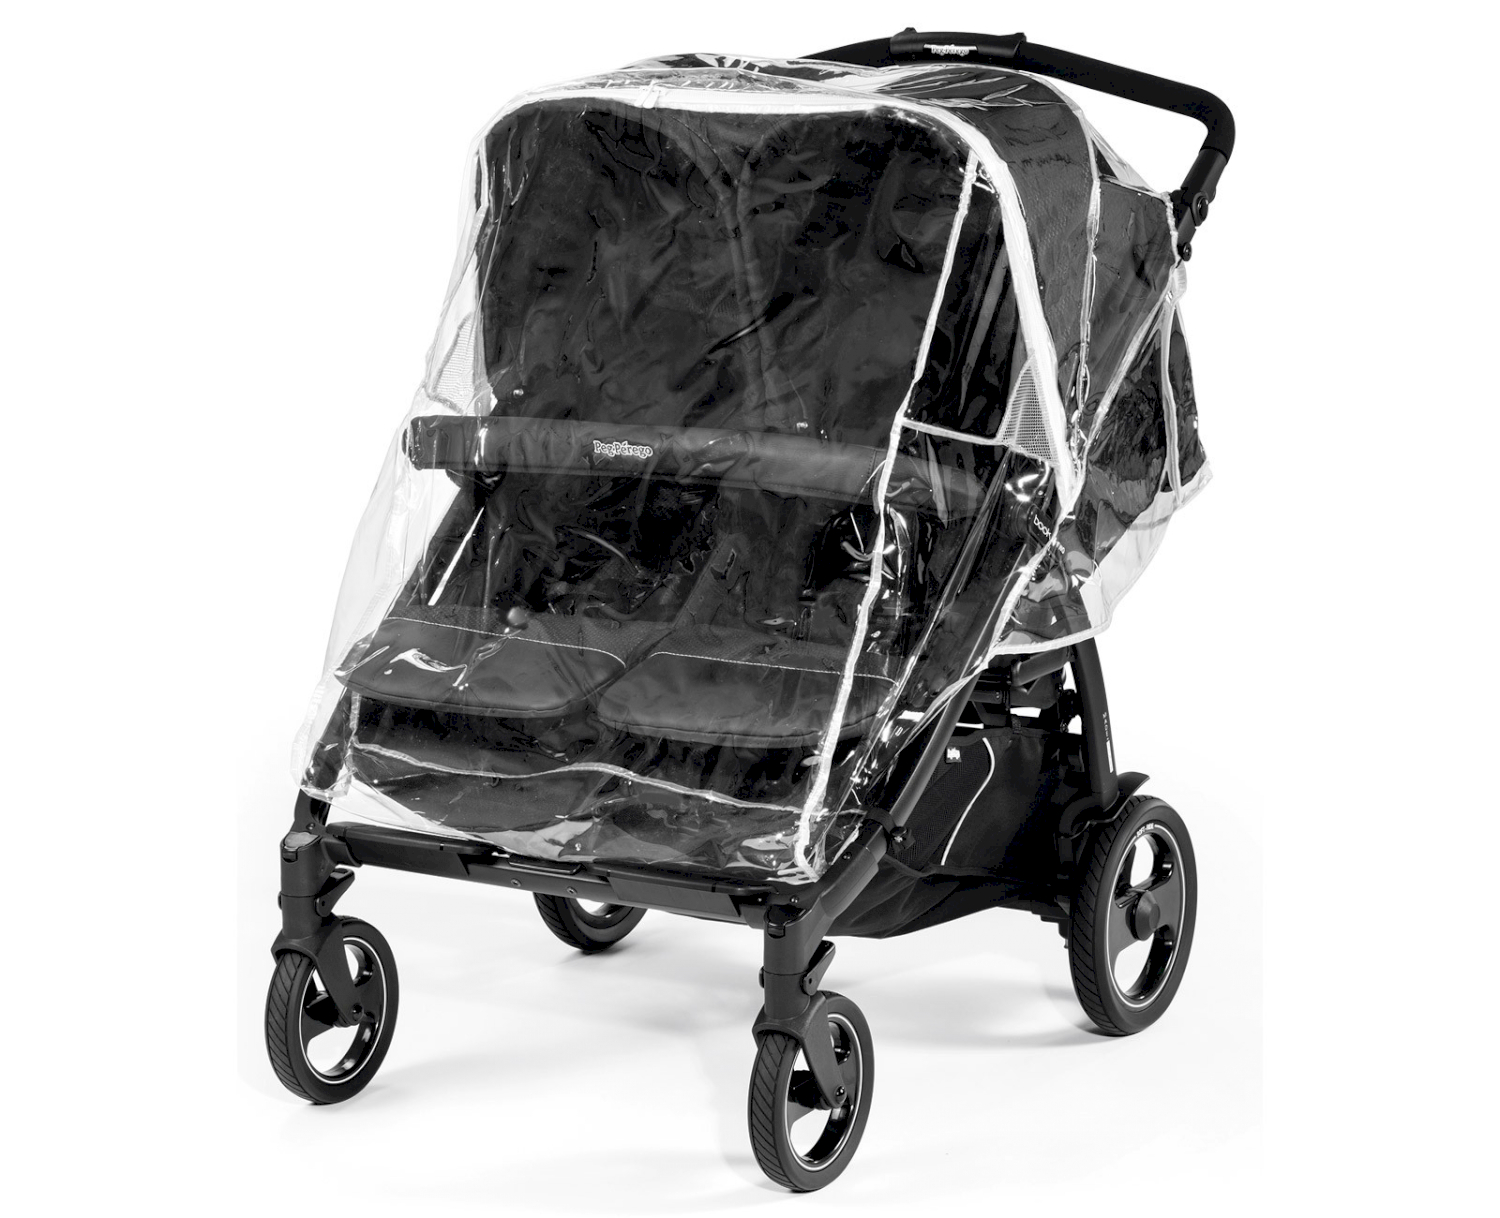 Parapioggia Book Fro Two Peg Perego